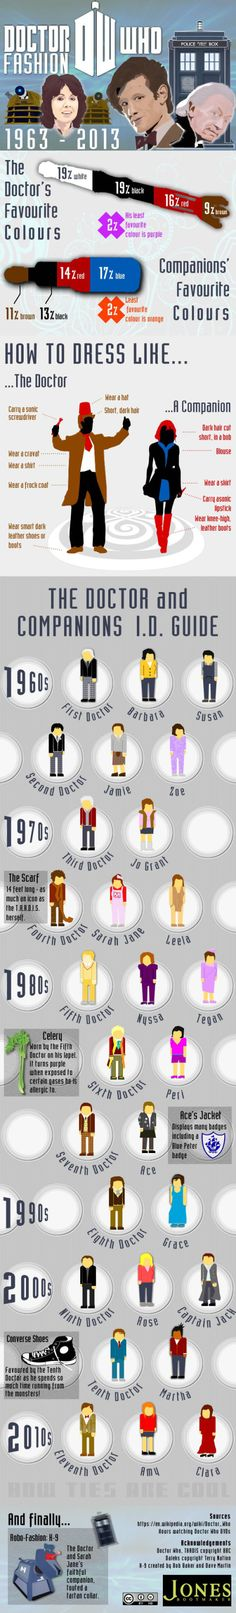 This is super inaccurate. Not sure why I'm even pinning it.  1) More companions wore pants than skirts 2) Black and white shouldn't count as colors because they are the bases you build an outfit off of. Brown could go this way, too.   3) Where is Donna? Mickey? Rory? 4) Rose spent just as much time with 10 as 9 and had a romantic relationship with him. How can she not be shown with him?